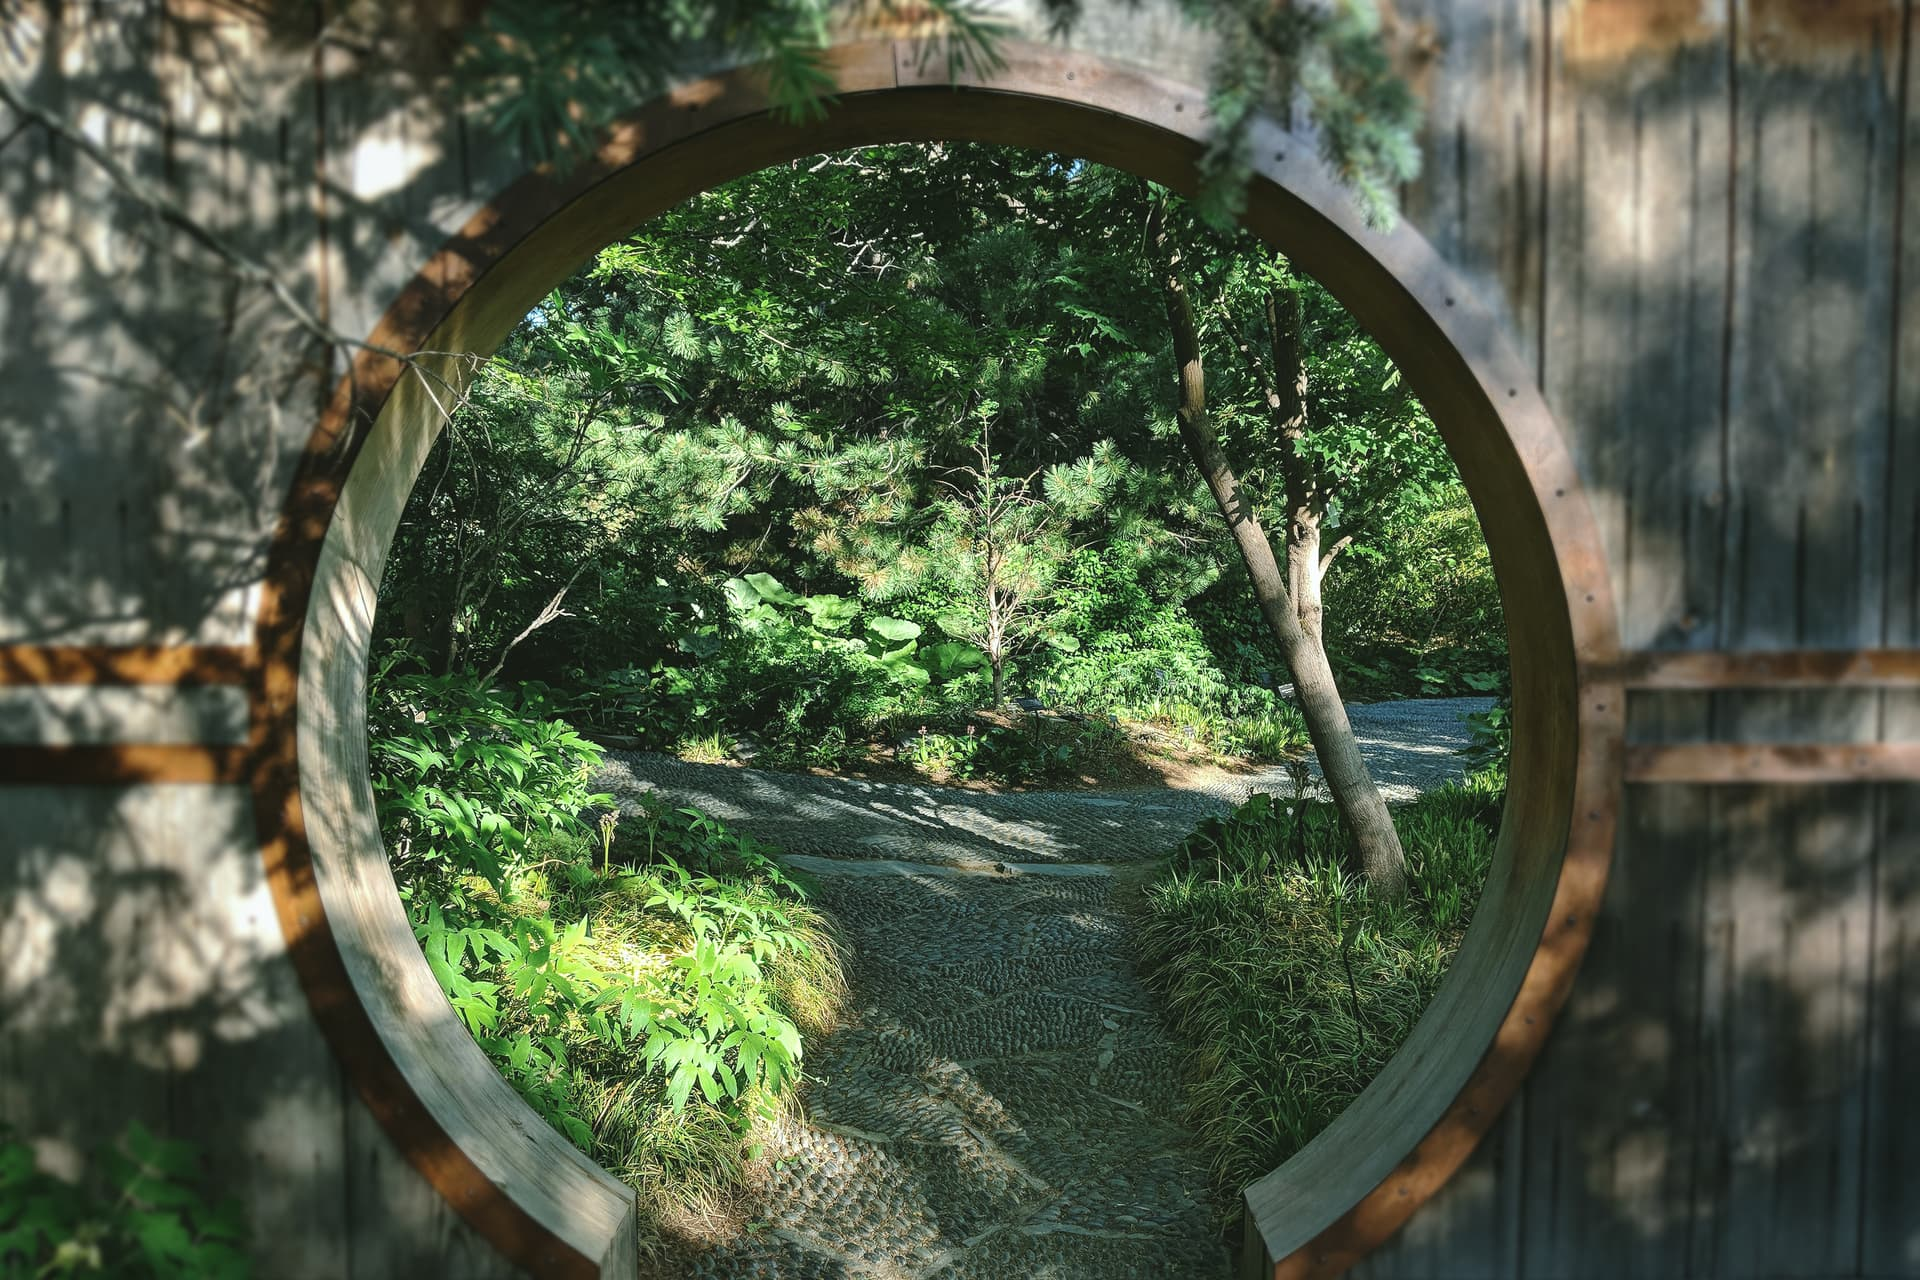 The view through a round, Chinese-style garden entrance. On the other side of the entrance, a stony path through the garden splits into two, heading off either side of the frame.